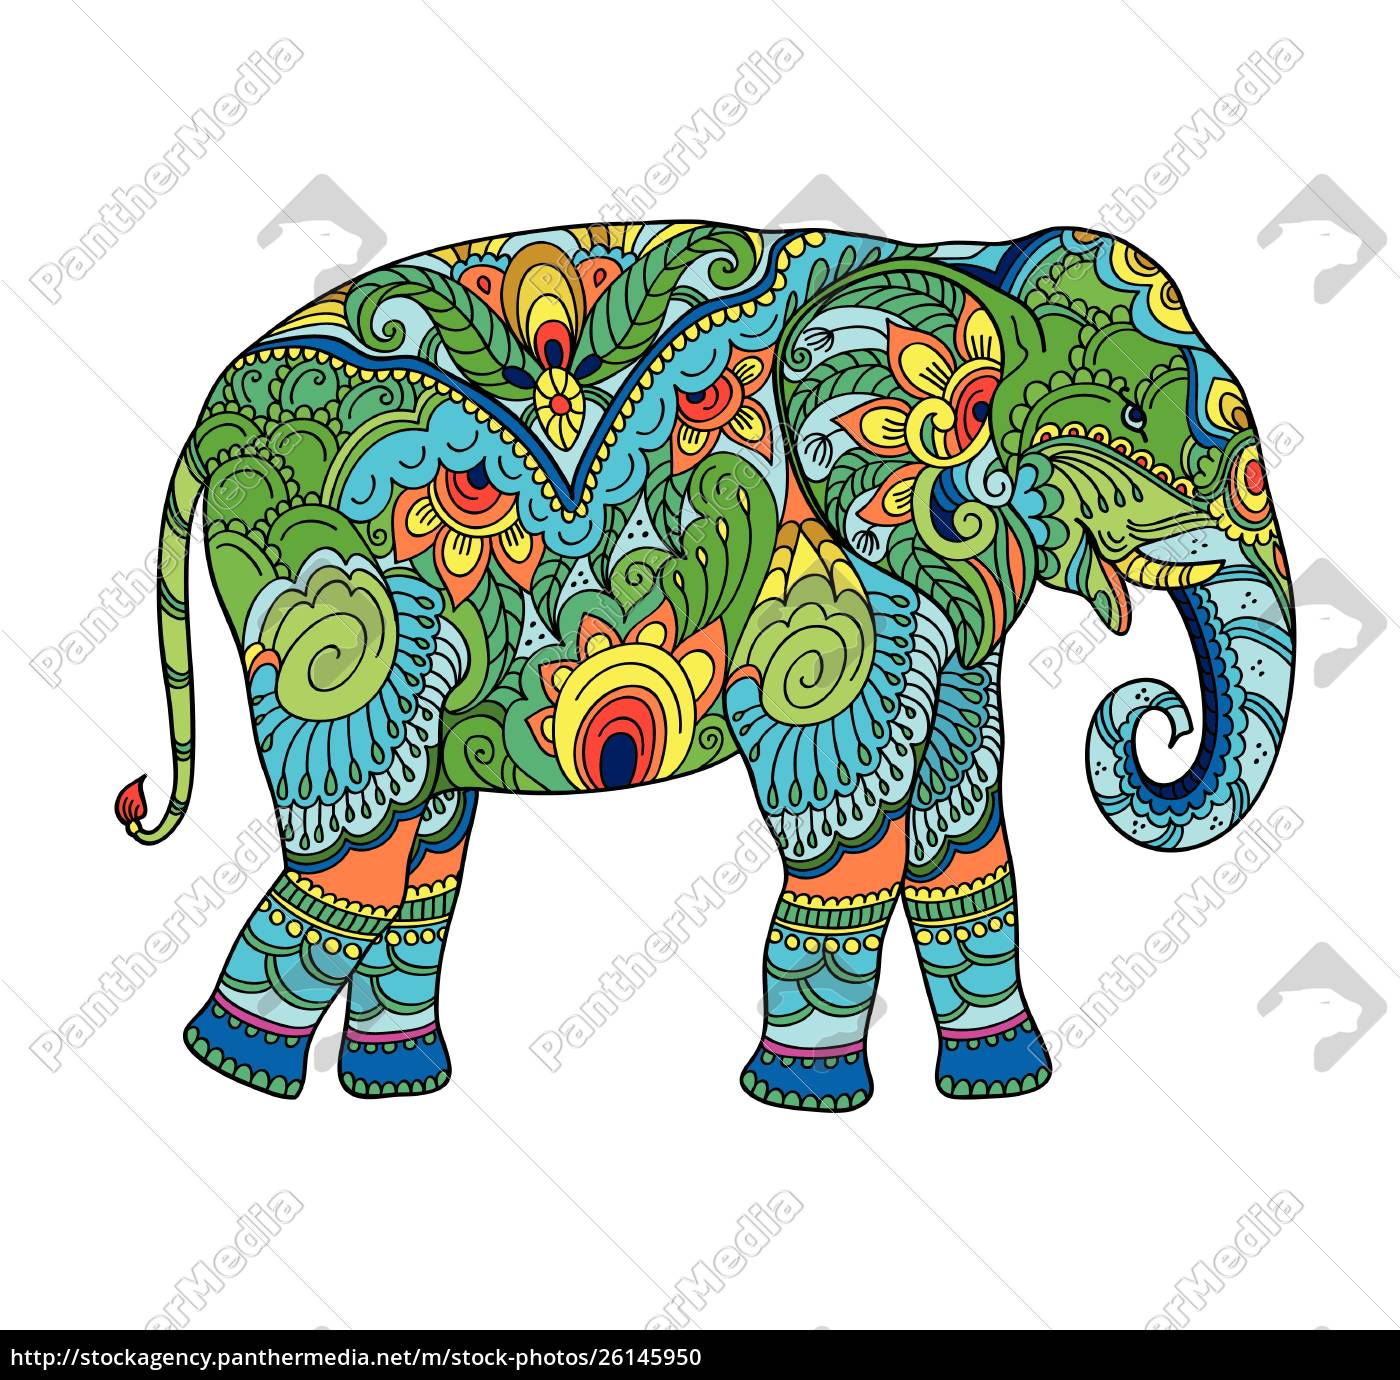 drawing, stylized, elephant., freehand, sketch, for - 26145950